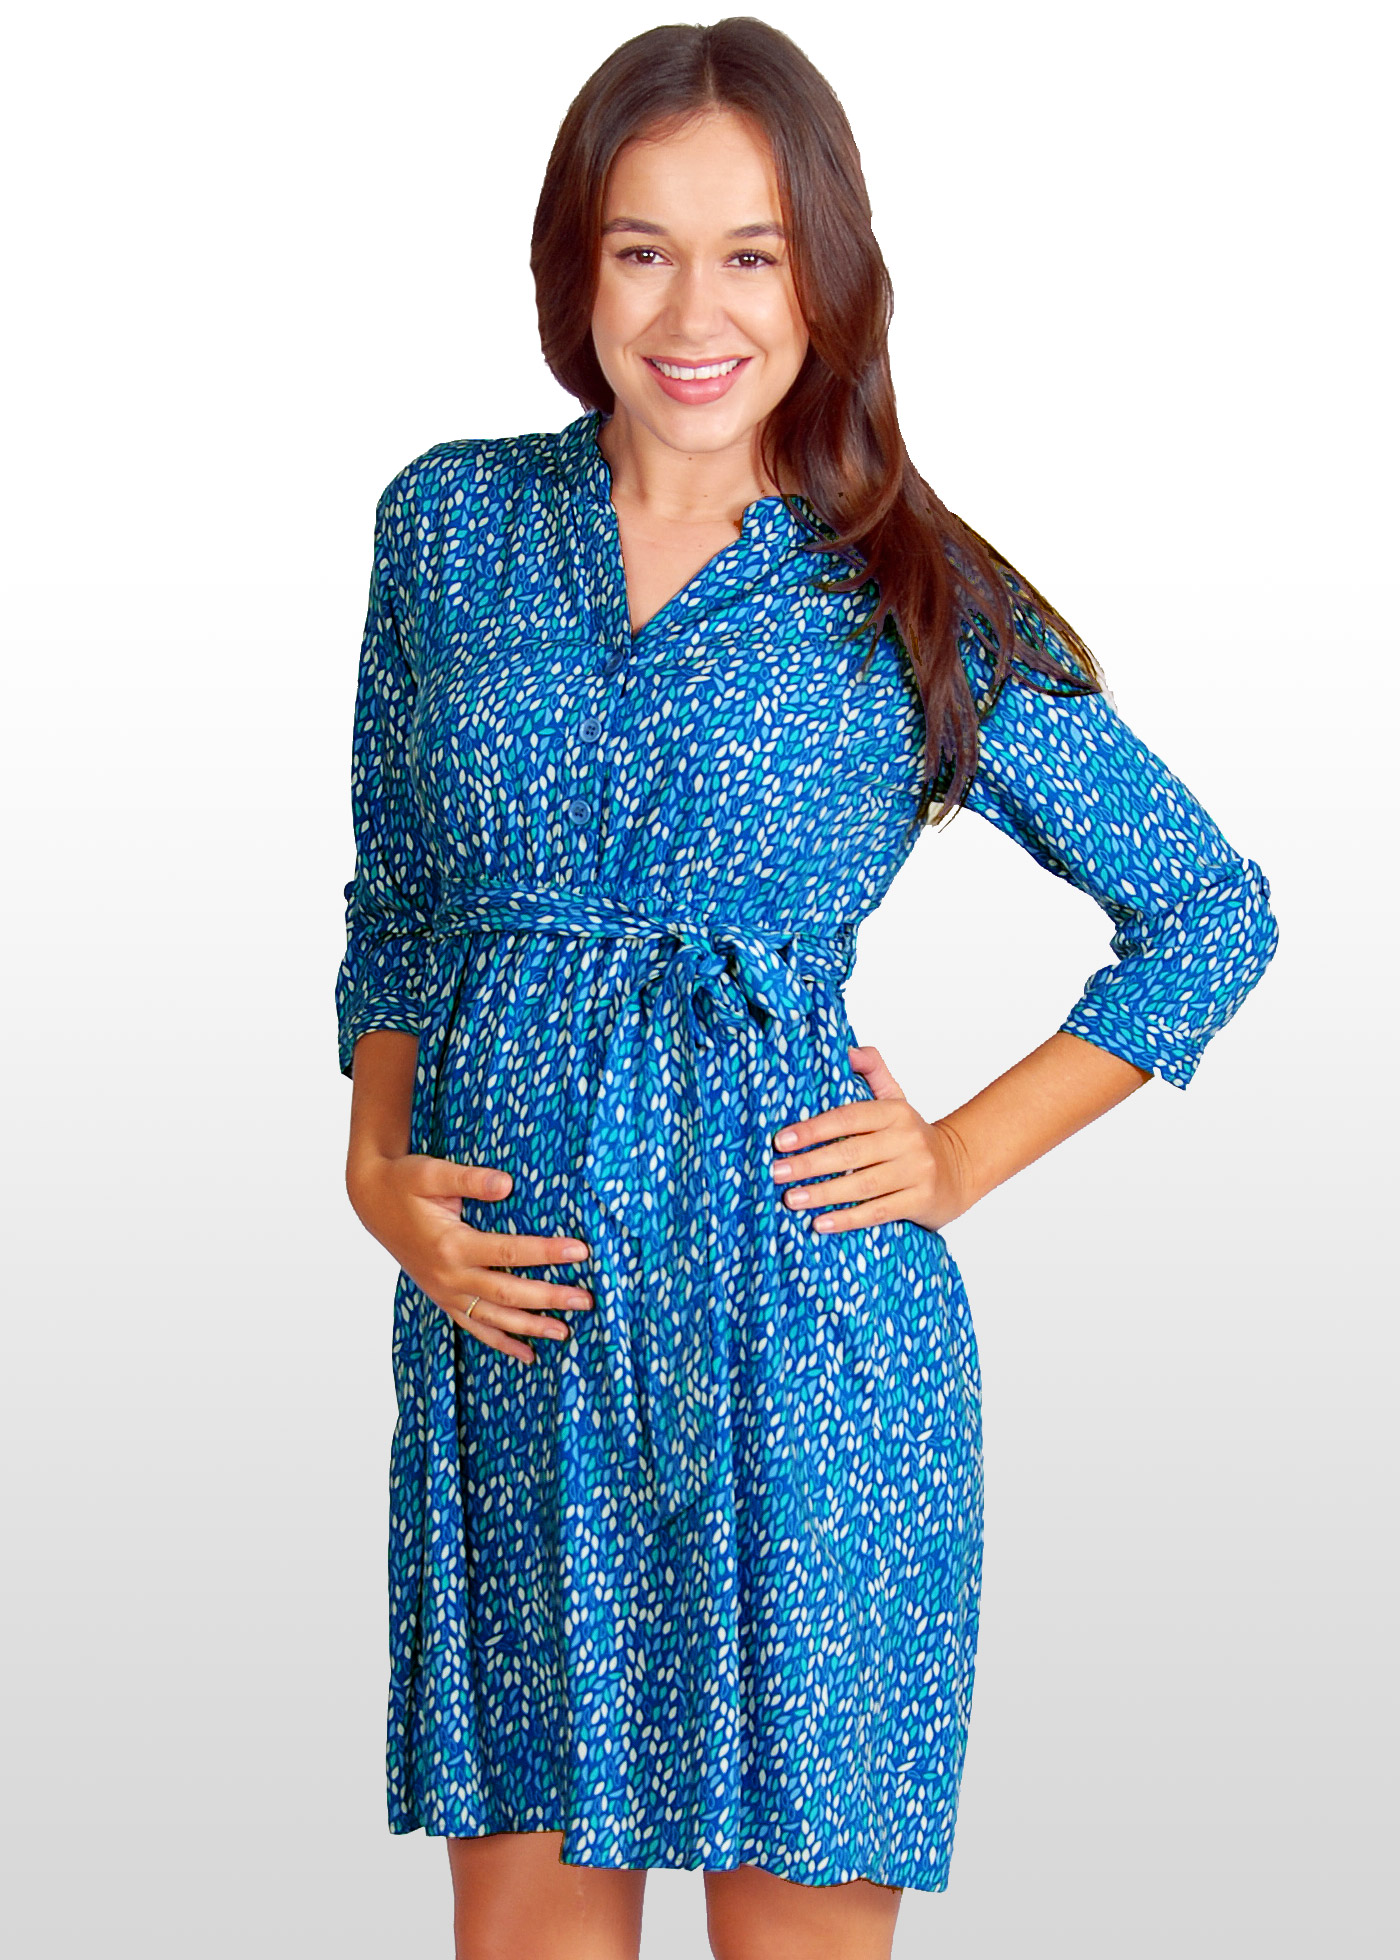 Chic Maternity Clothes Online